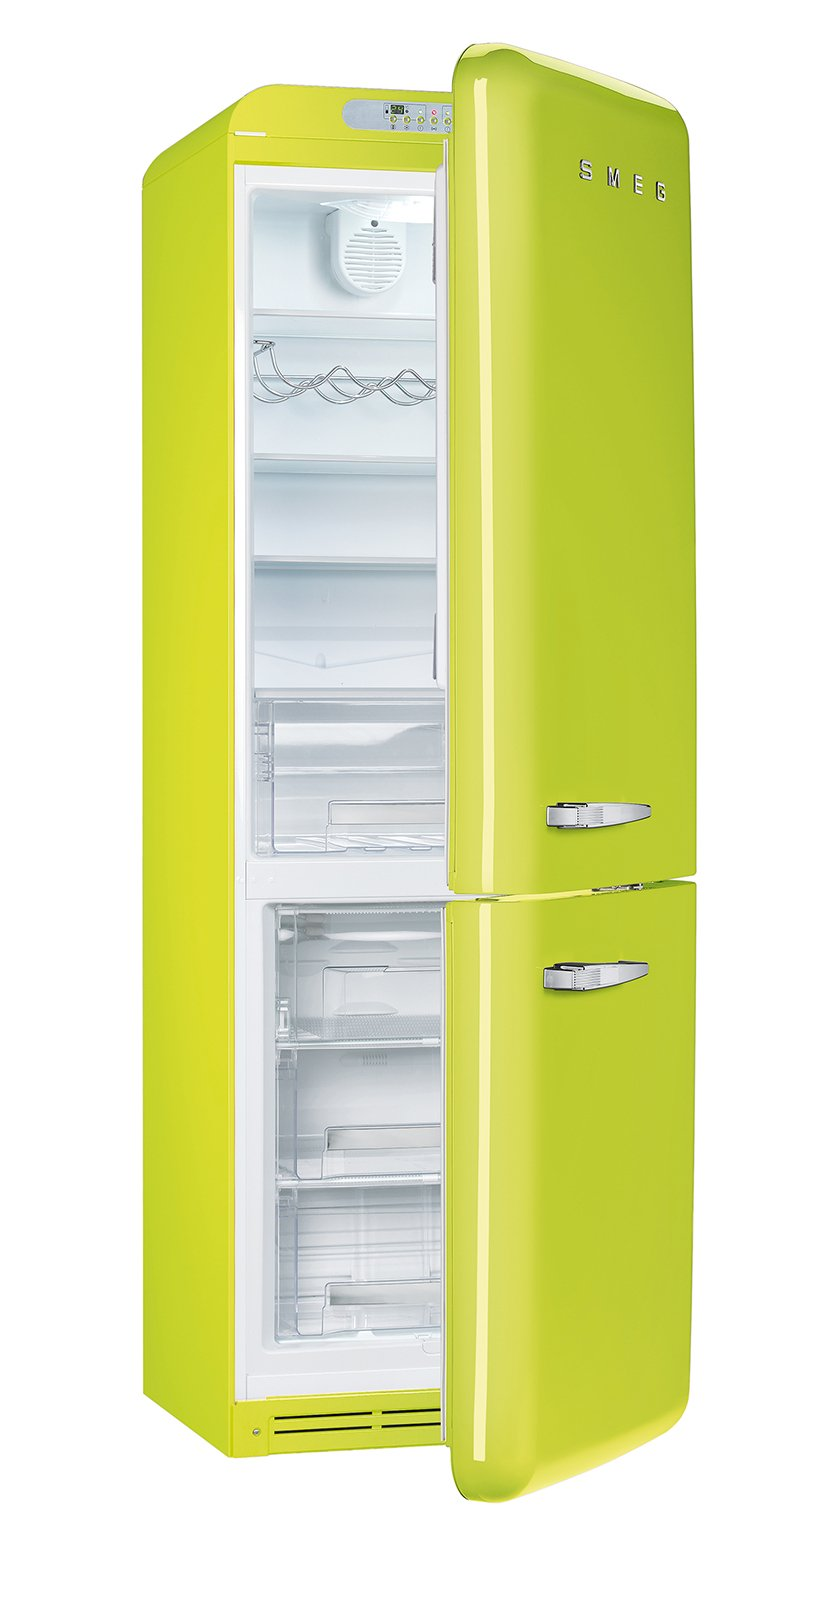 Emejing Smeg Frigo Prezzi Photos - Skilifts.us - skilifts.us